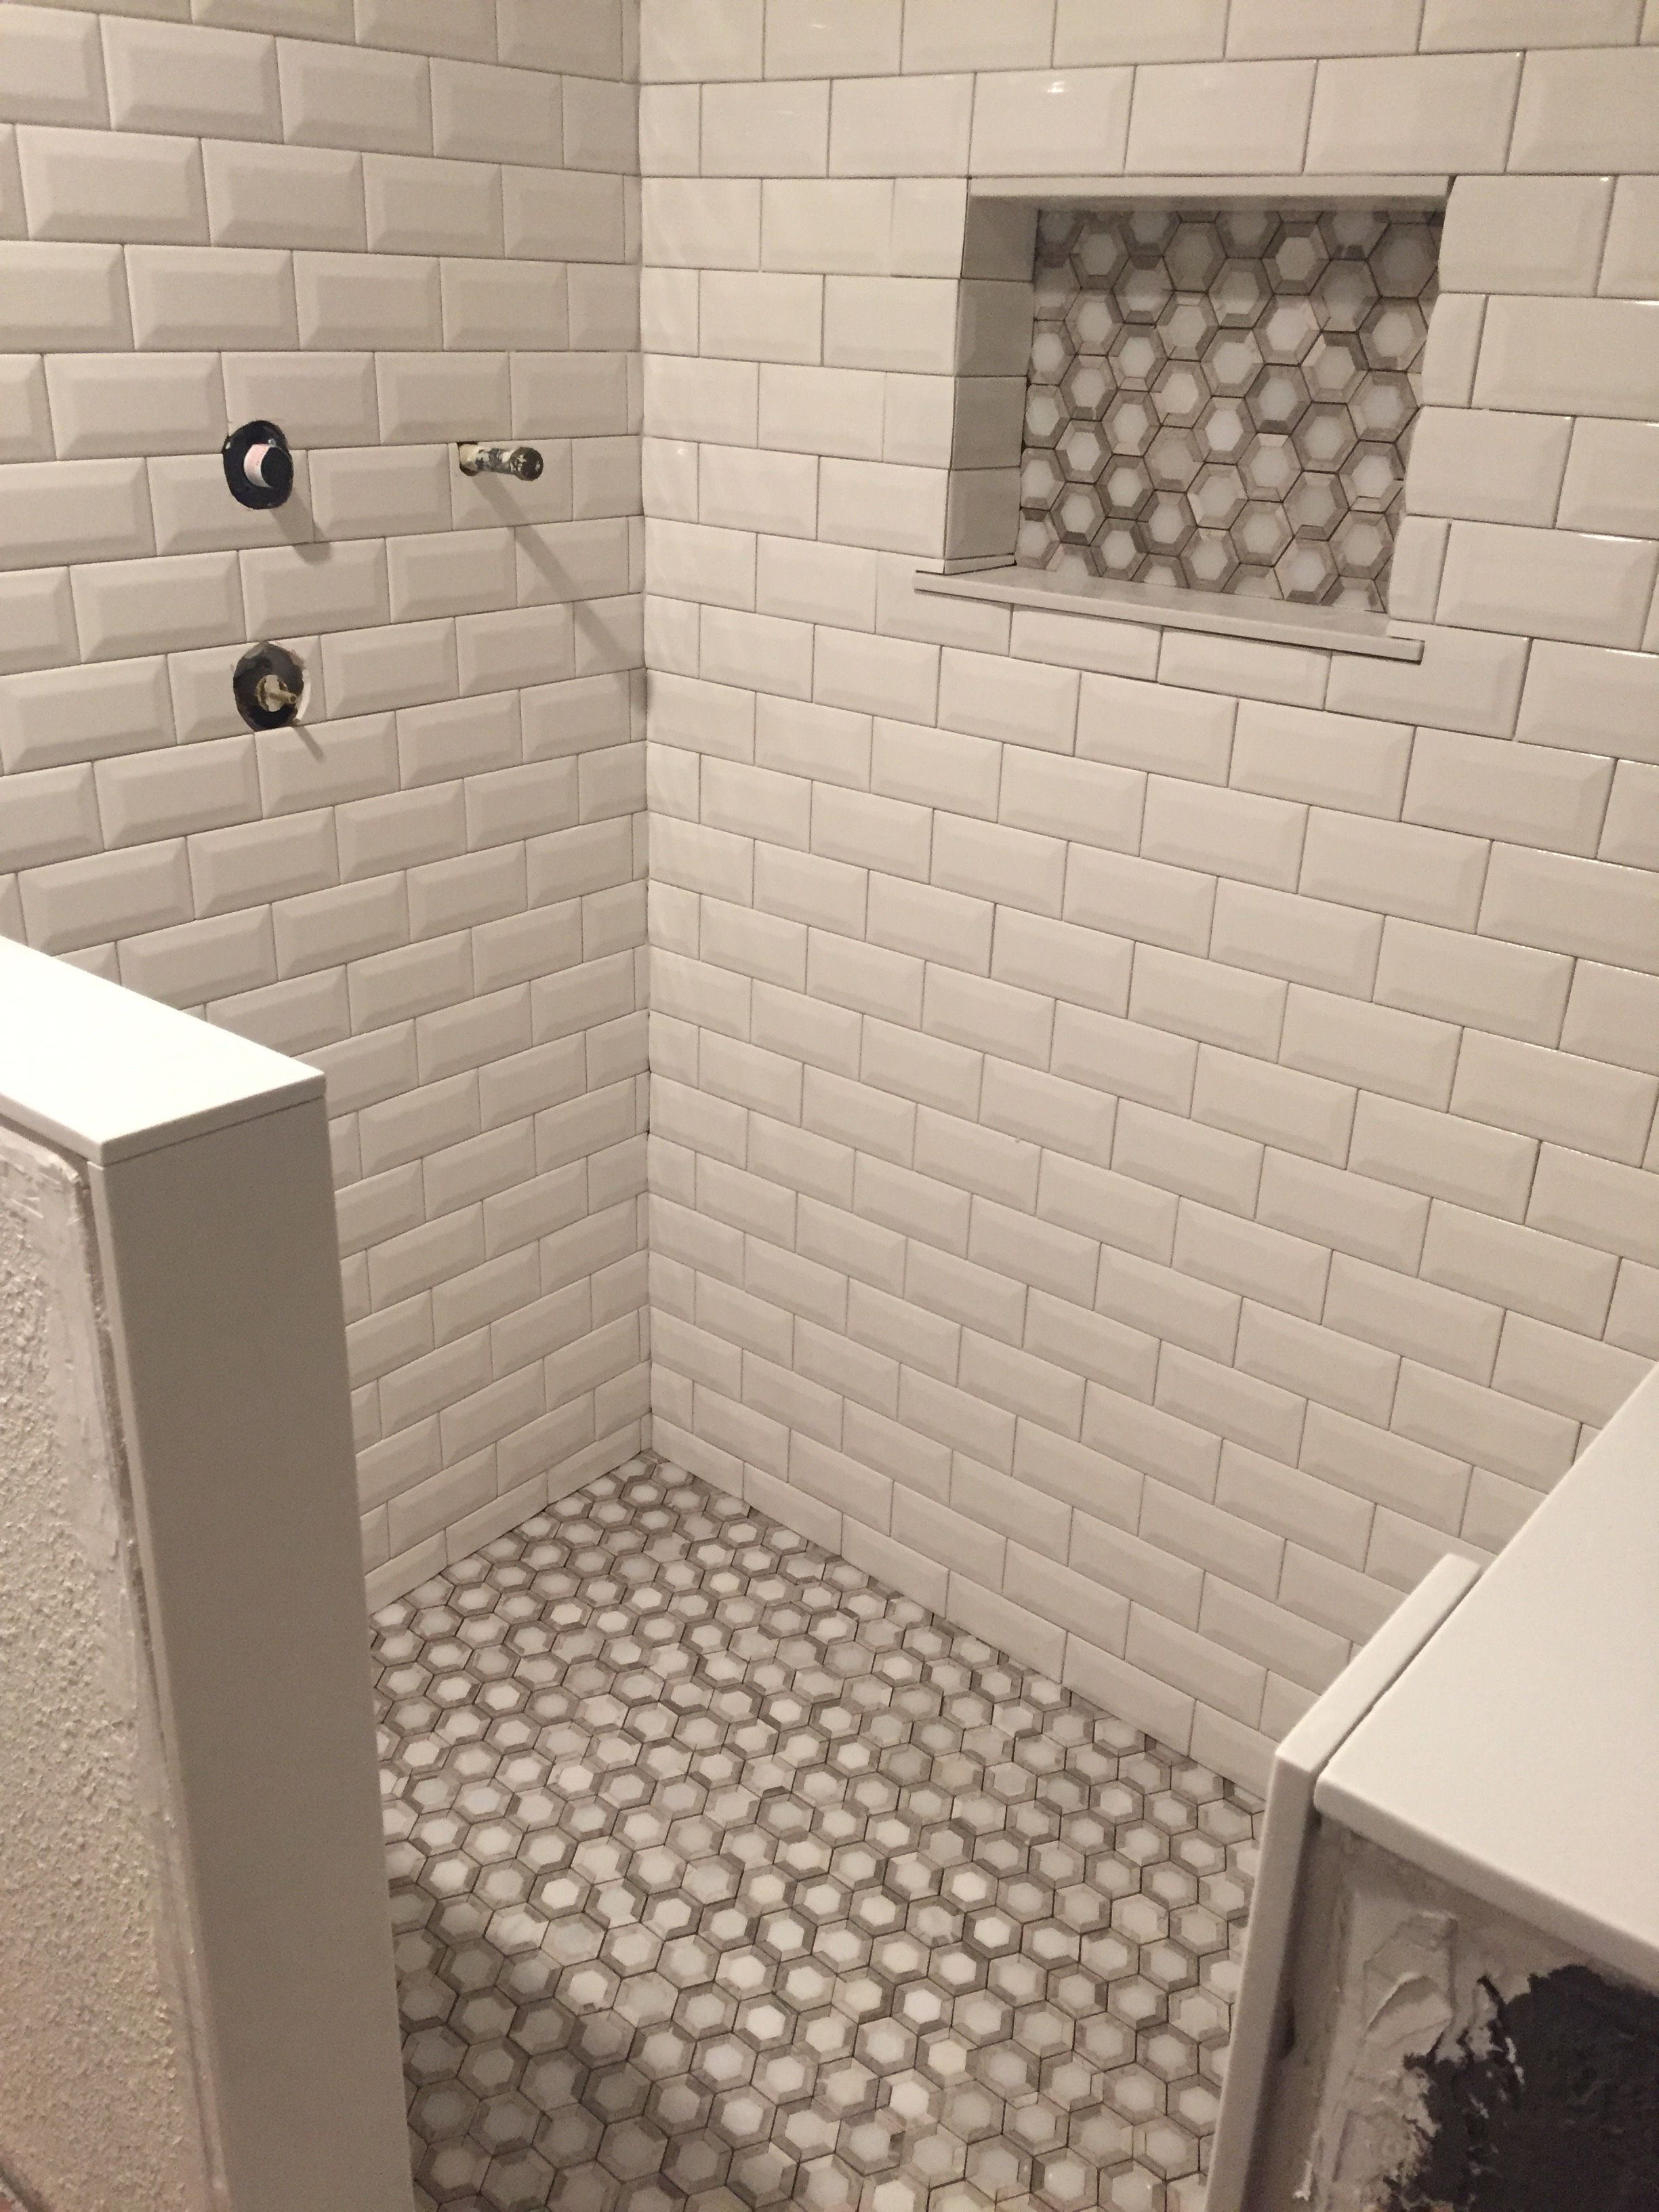 Shower Tile Install- White beveled subway tiles, MIR Mosaic Marbella ...